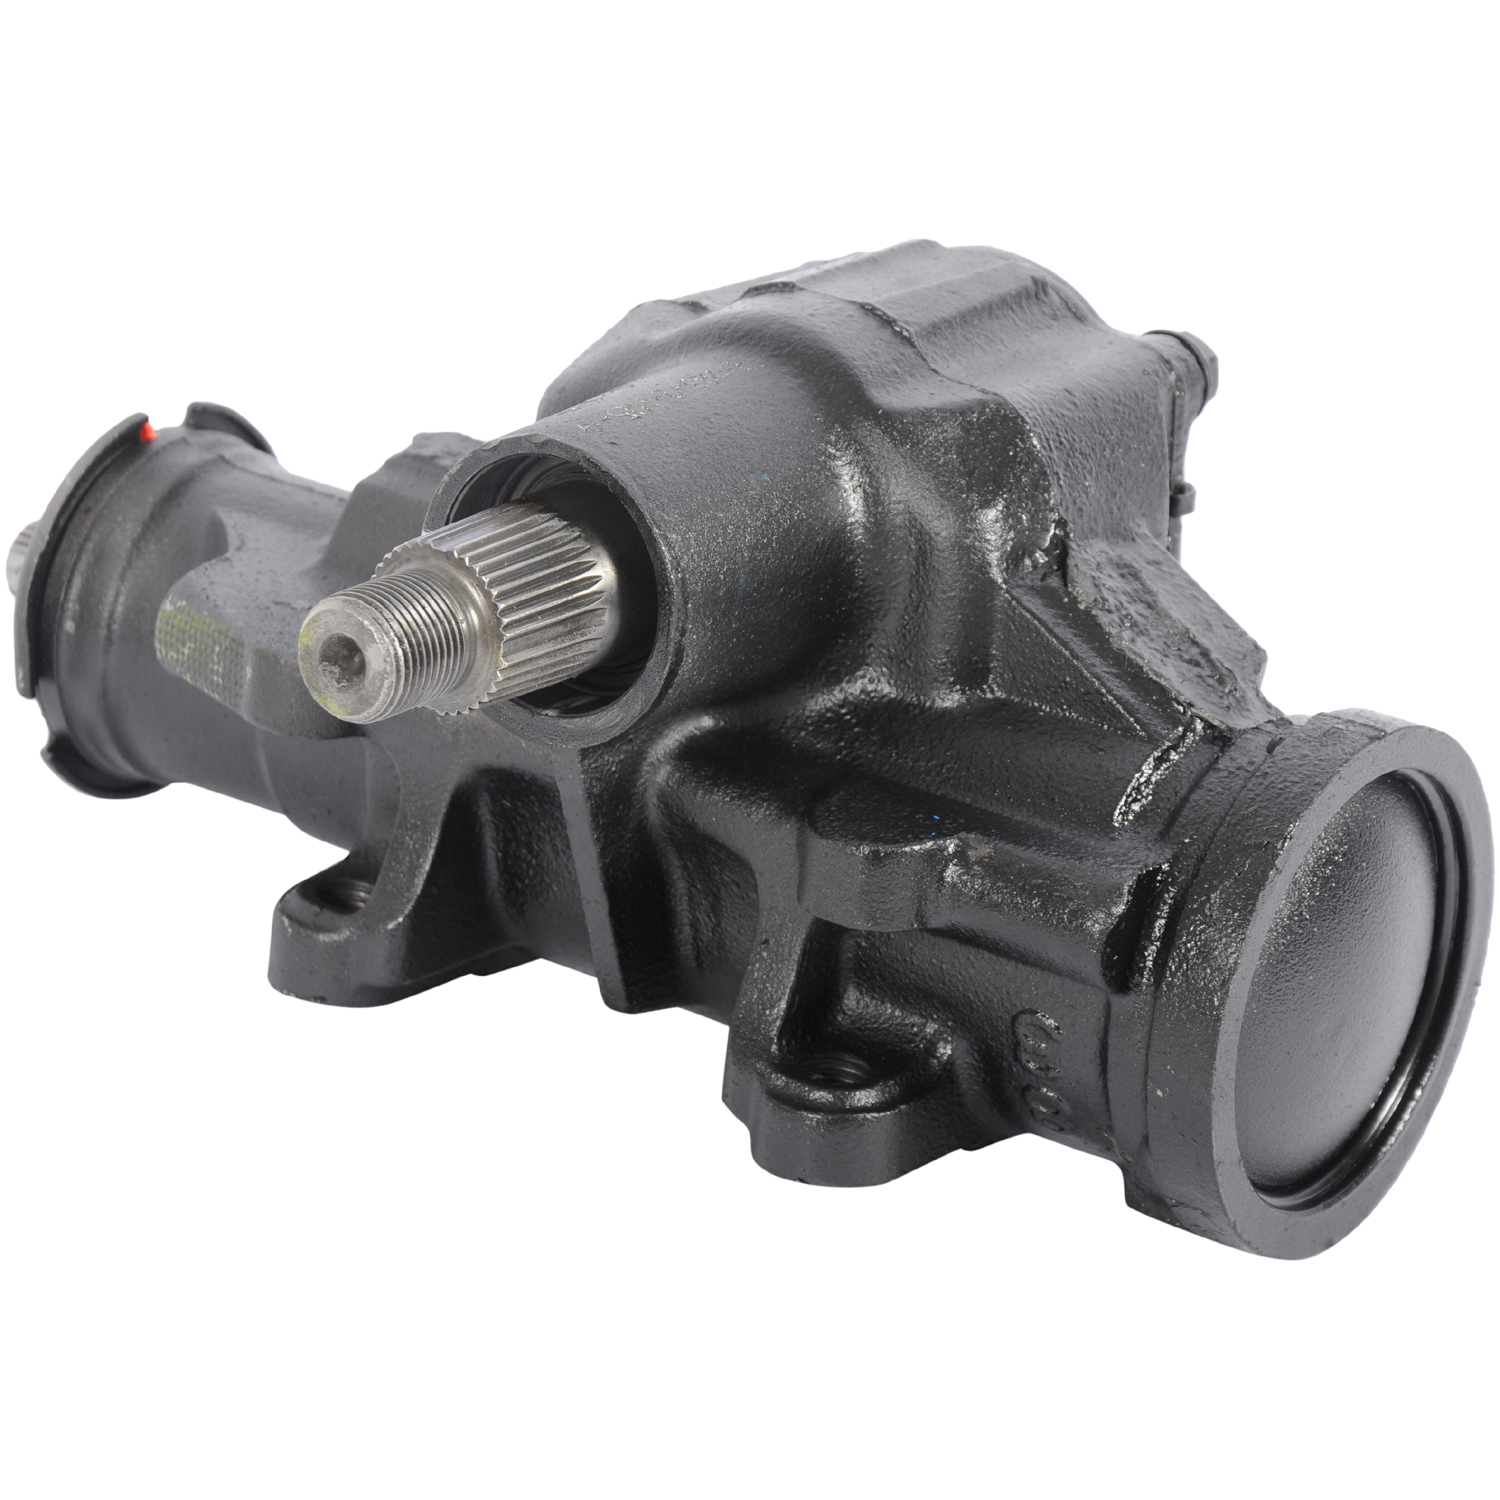 ACDELCO PROFESSIONAL STRG PRODUCTS - Professional Remanufactured Steering Gear - DC5 36G0139